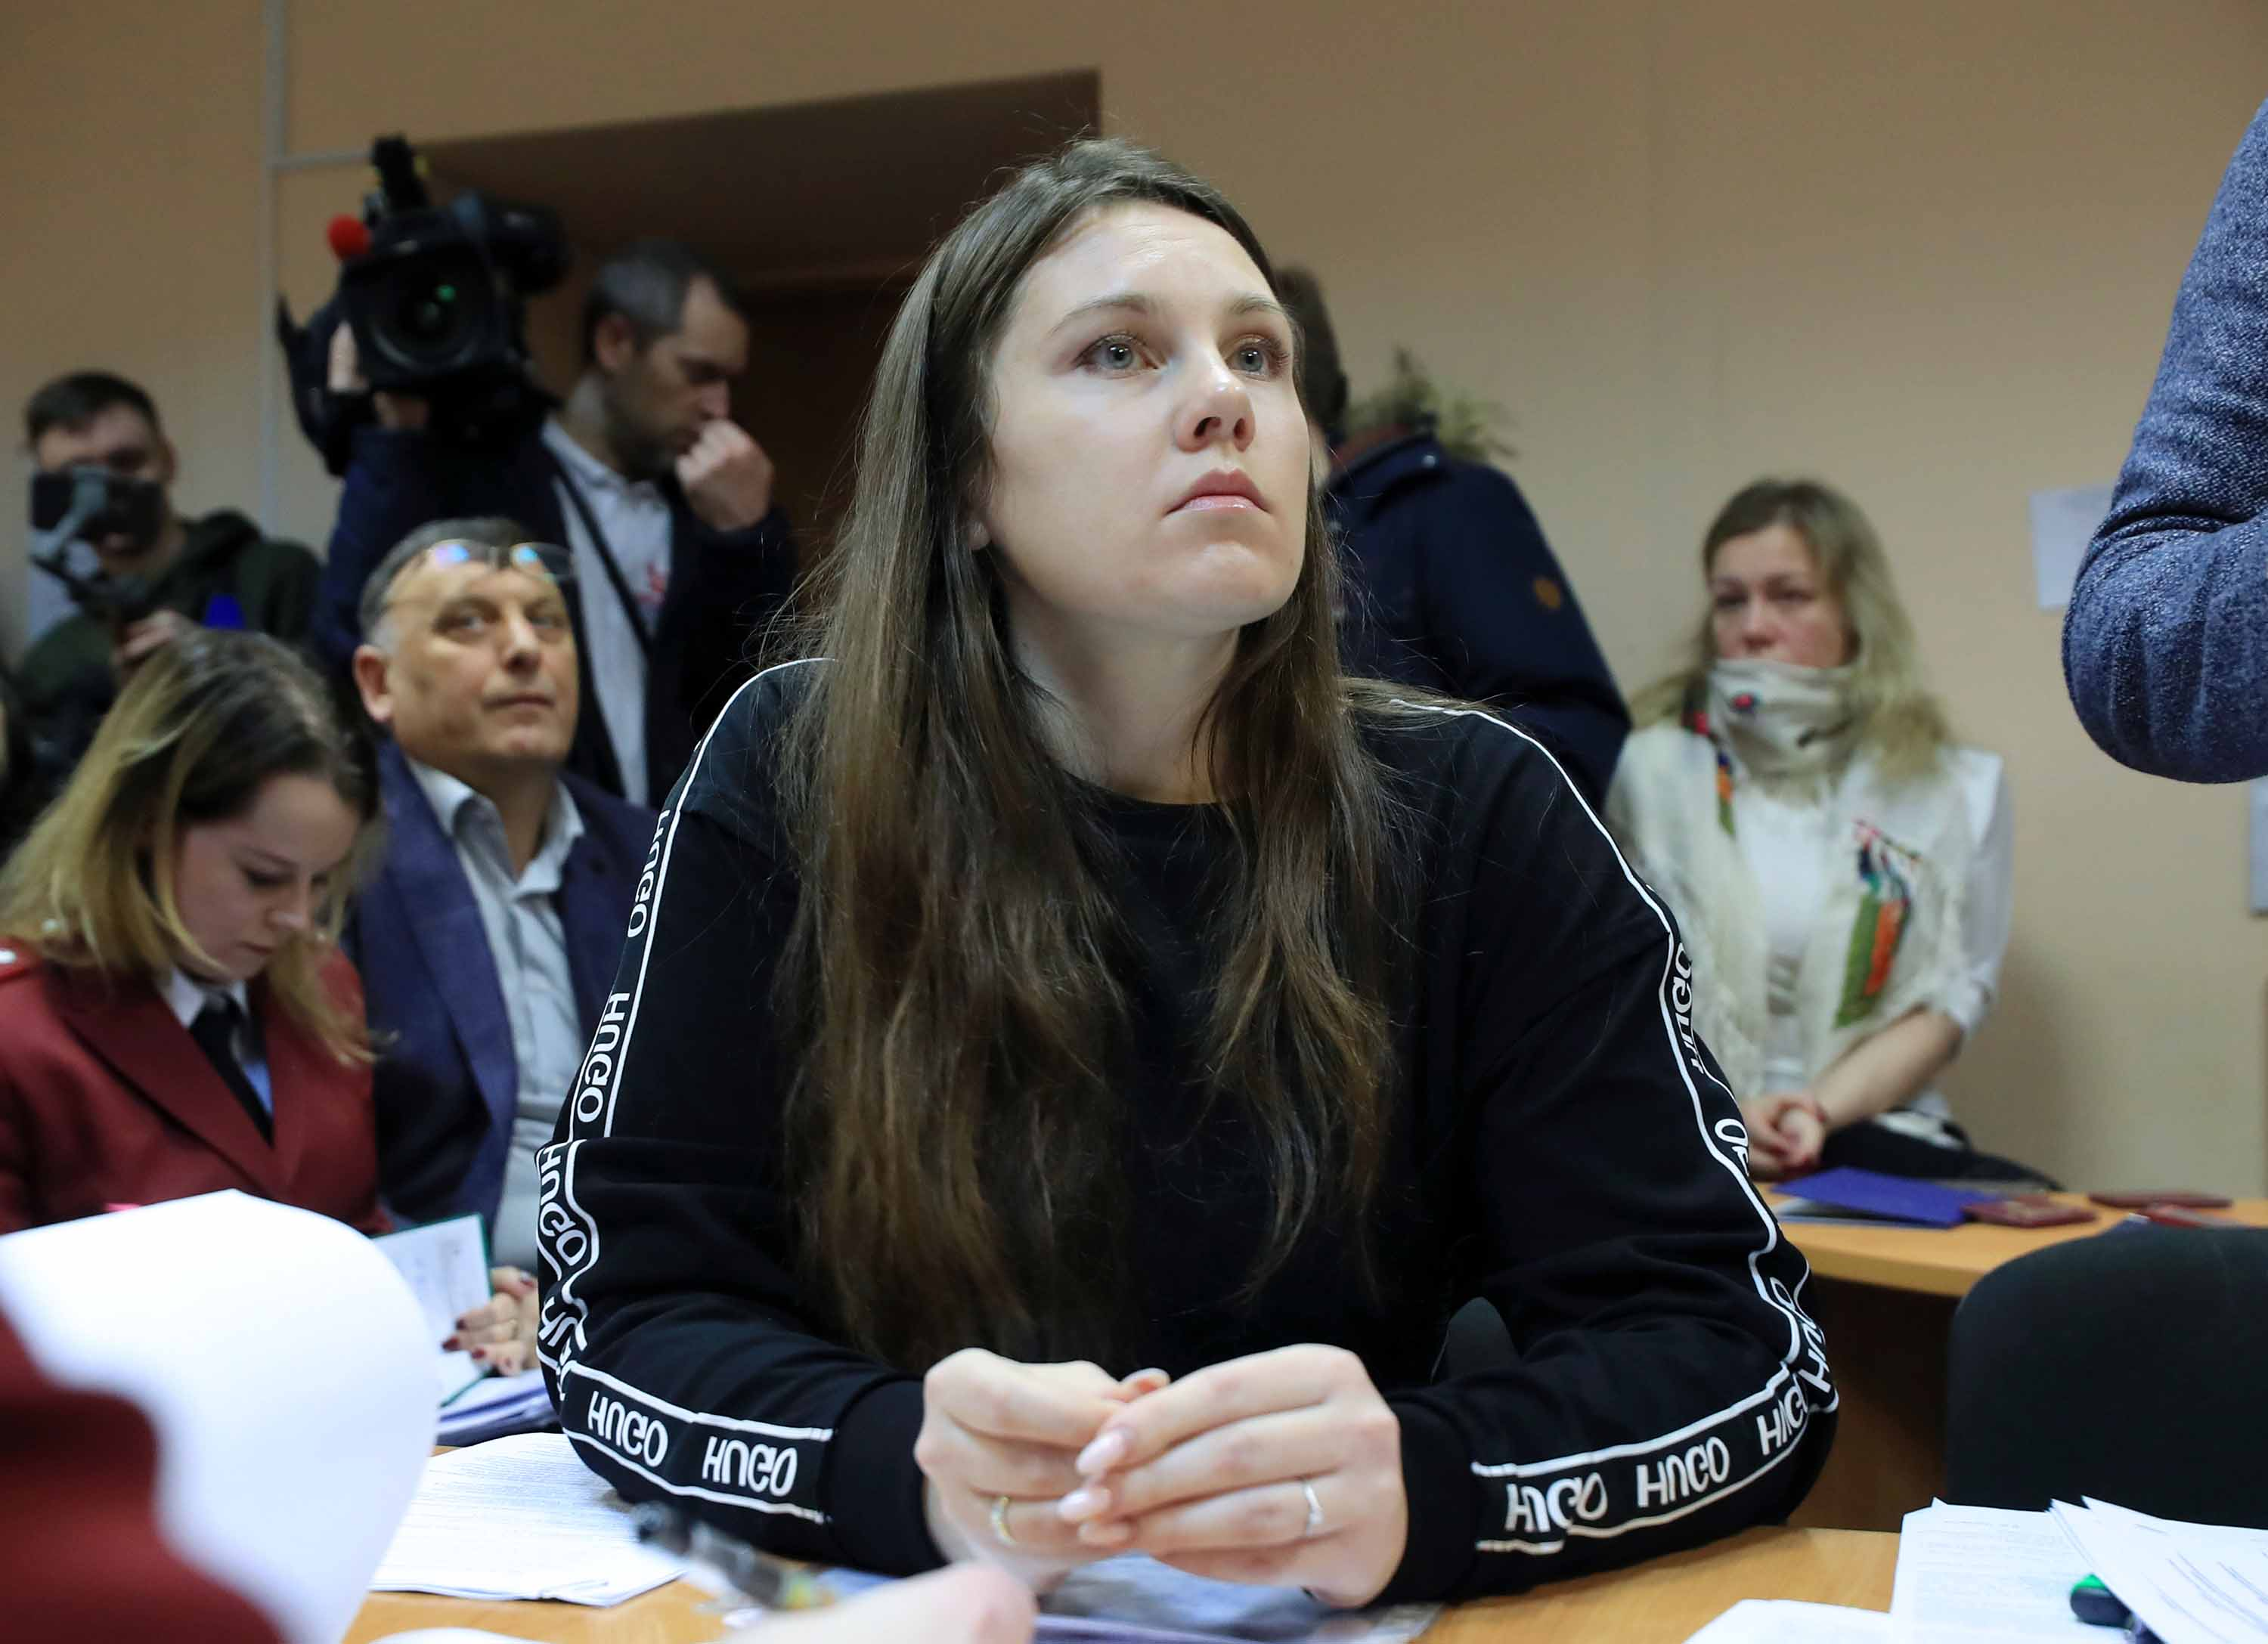 Alla Ilyina attends a hearing for a complaint brought by Natalia Bashketova, St. Petersburg's Chief Sanitary Physician, at the Petrogradsky District Court on Monday.